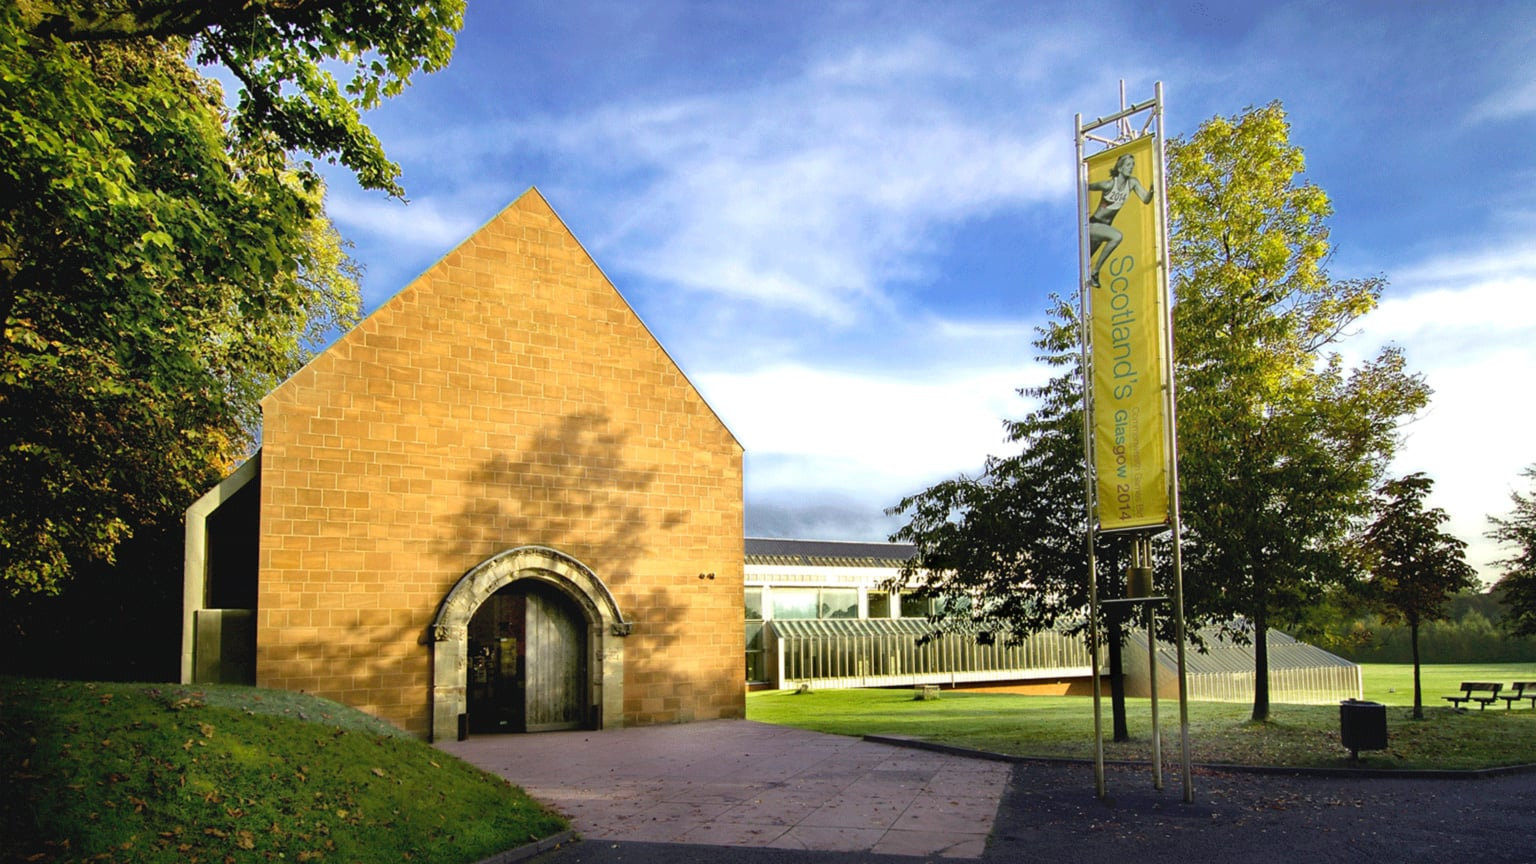 4. Burrell Collection, Glasgow - Free entry to all